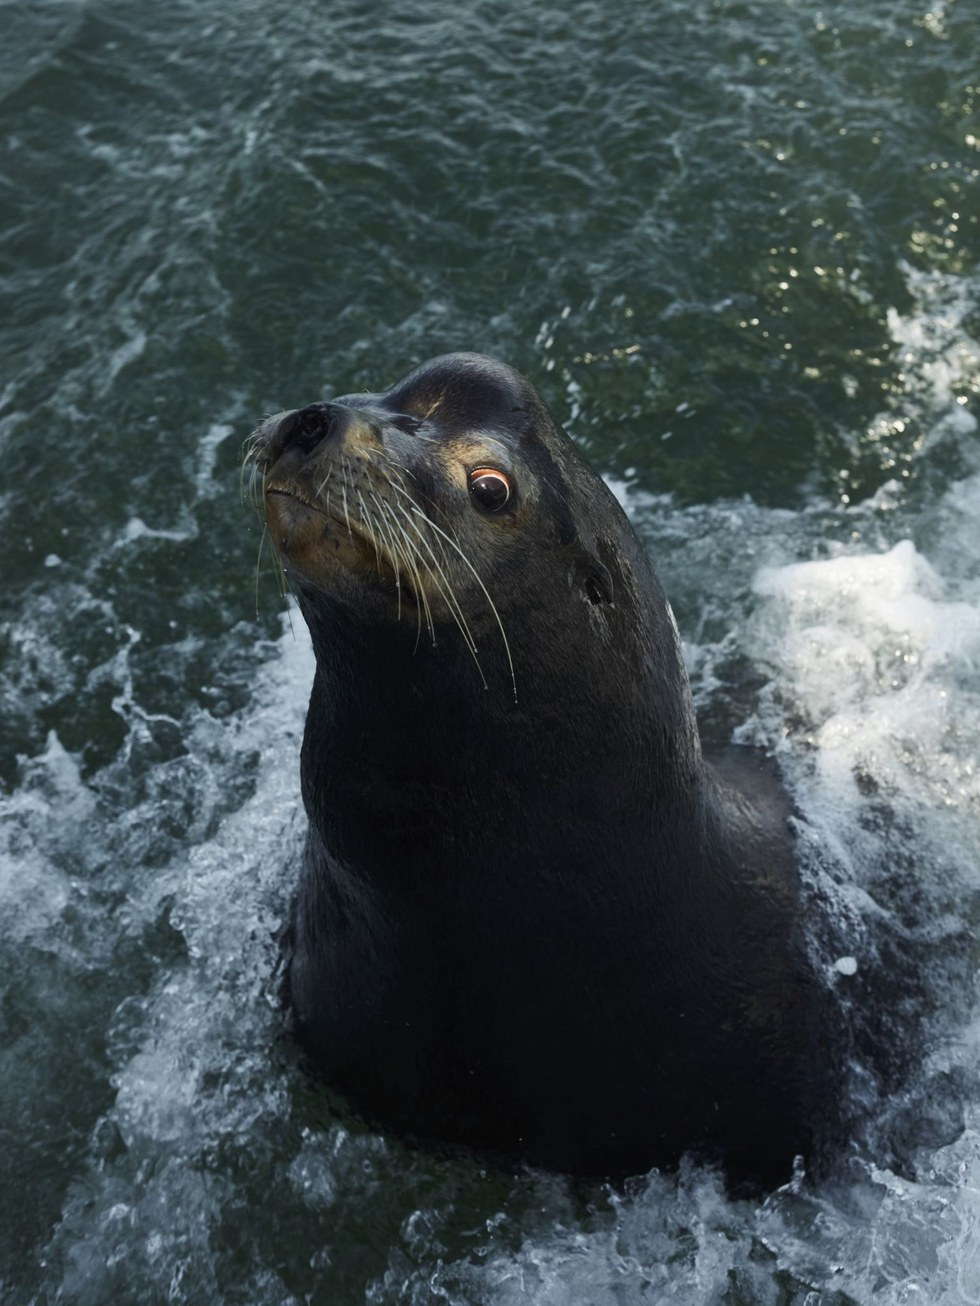 A sea lion hoping for fish from the day's catch